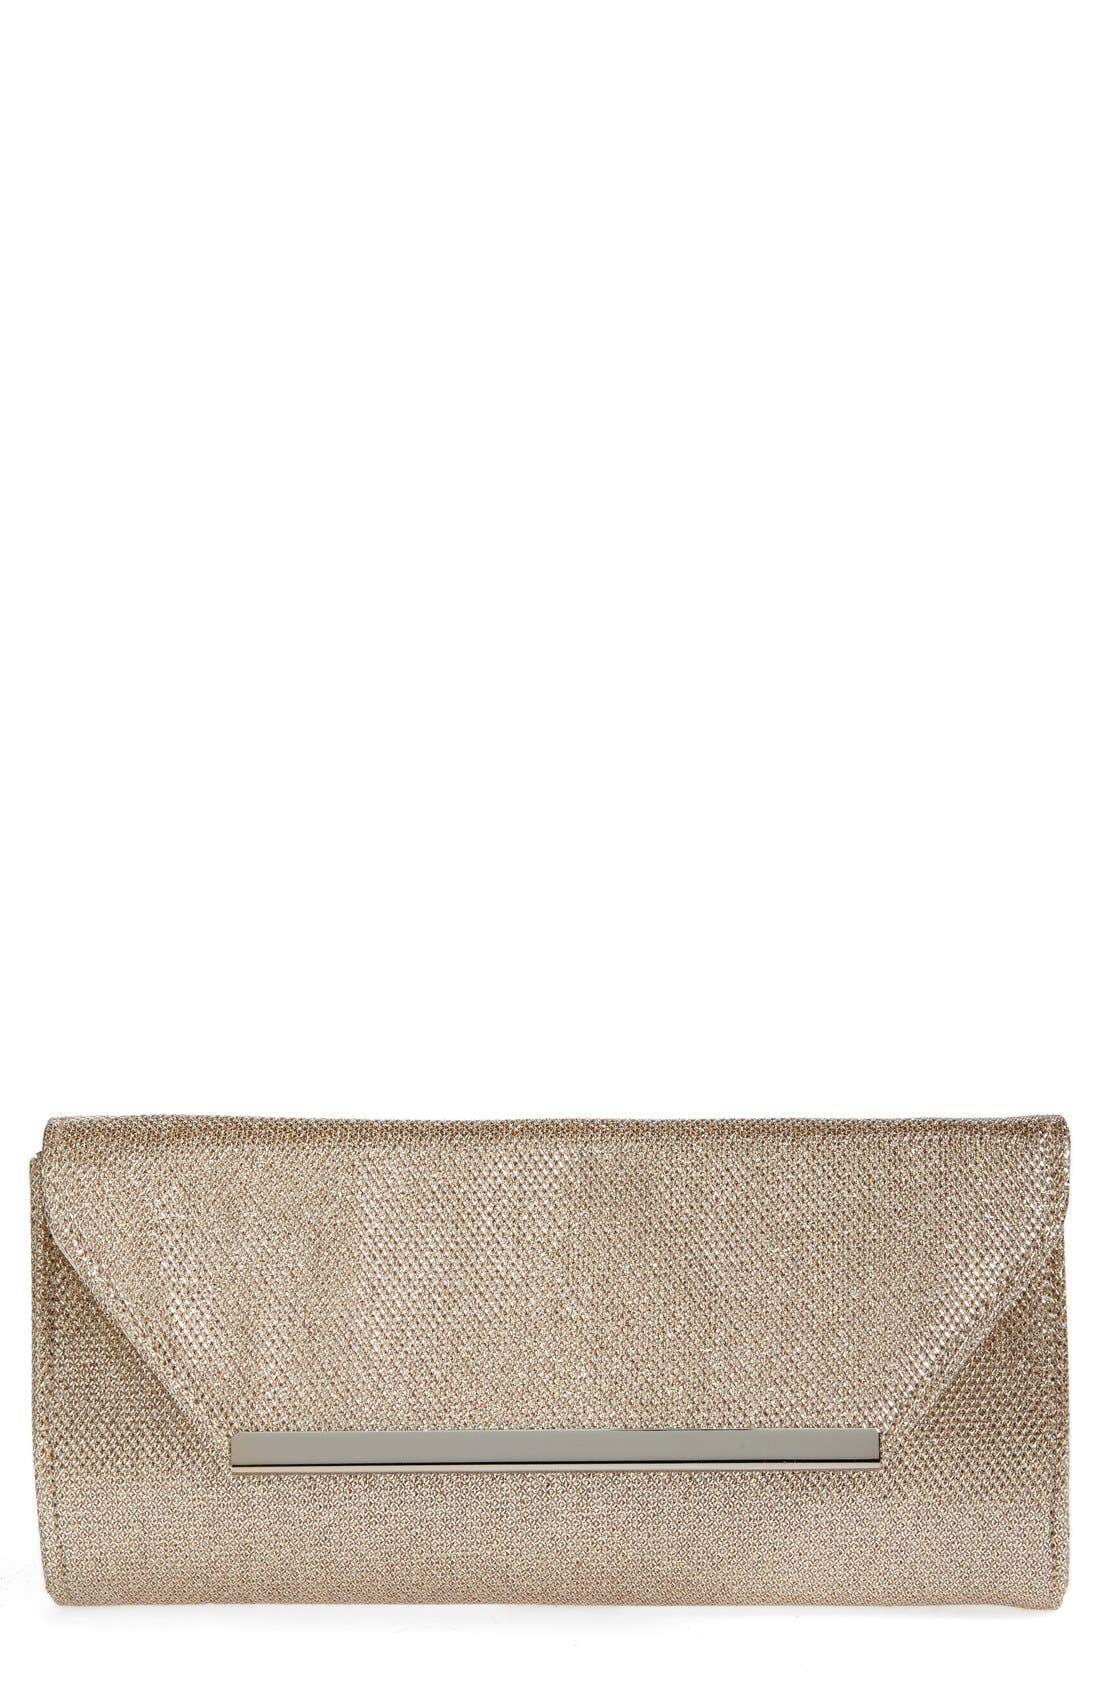 Alternate Image 1 Selected - Glint Metallic Envelope Clutch